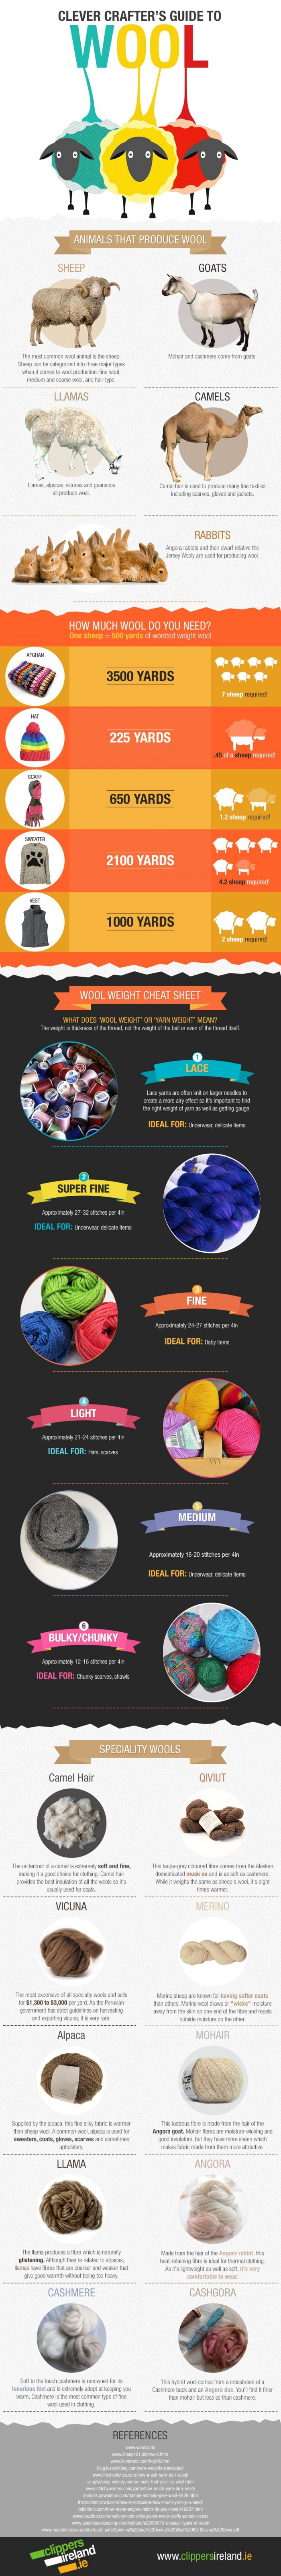 clever-crafters-guide-to-wool-Clippers-Ireland-Infographic